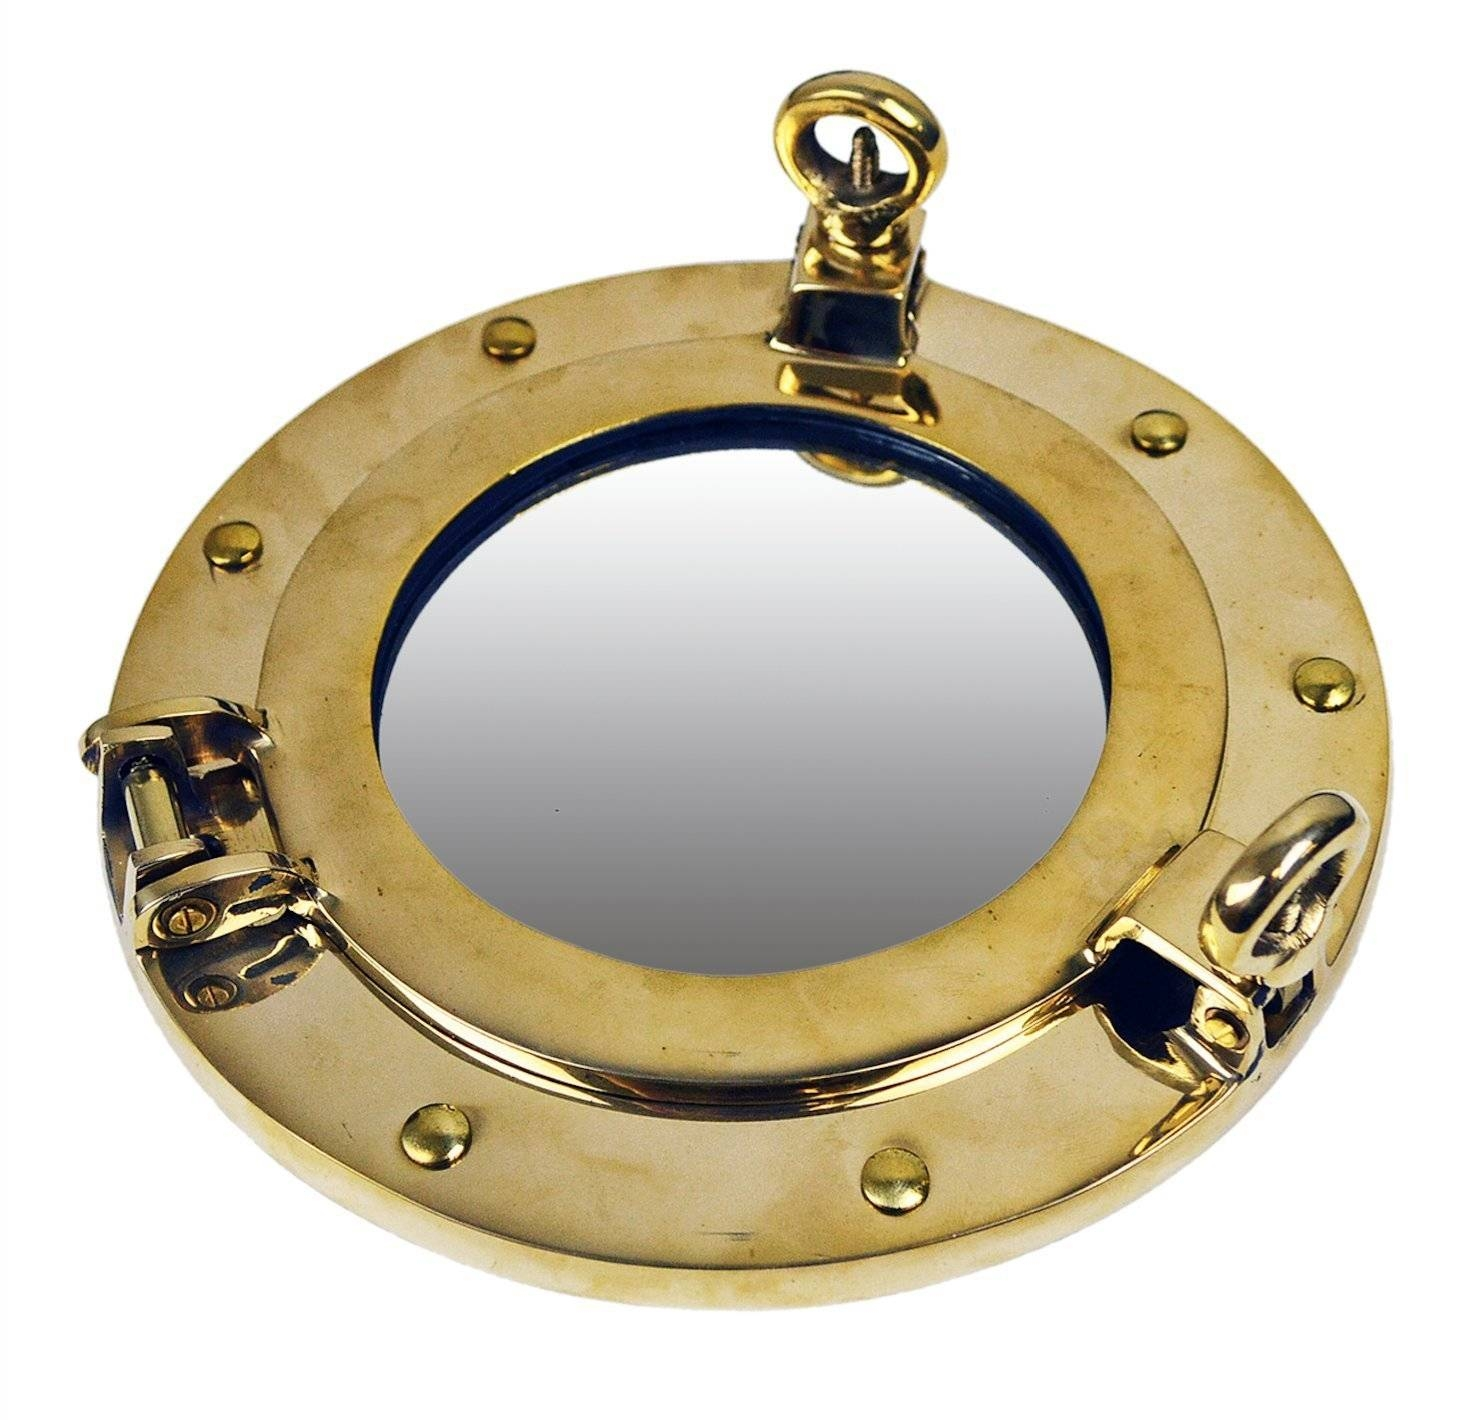 Porthole Windows Porthole Mirrors Largest Selection Ships Port Holes pertaining to Porthole Style Mirrors (Image 15 of 25)